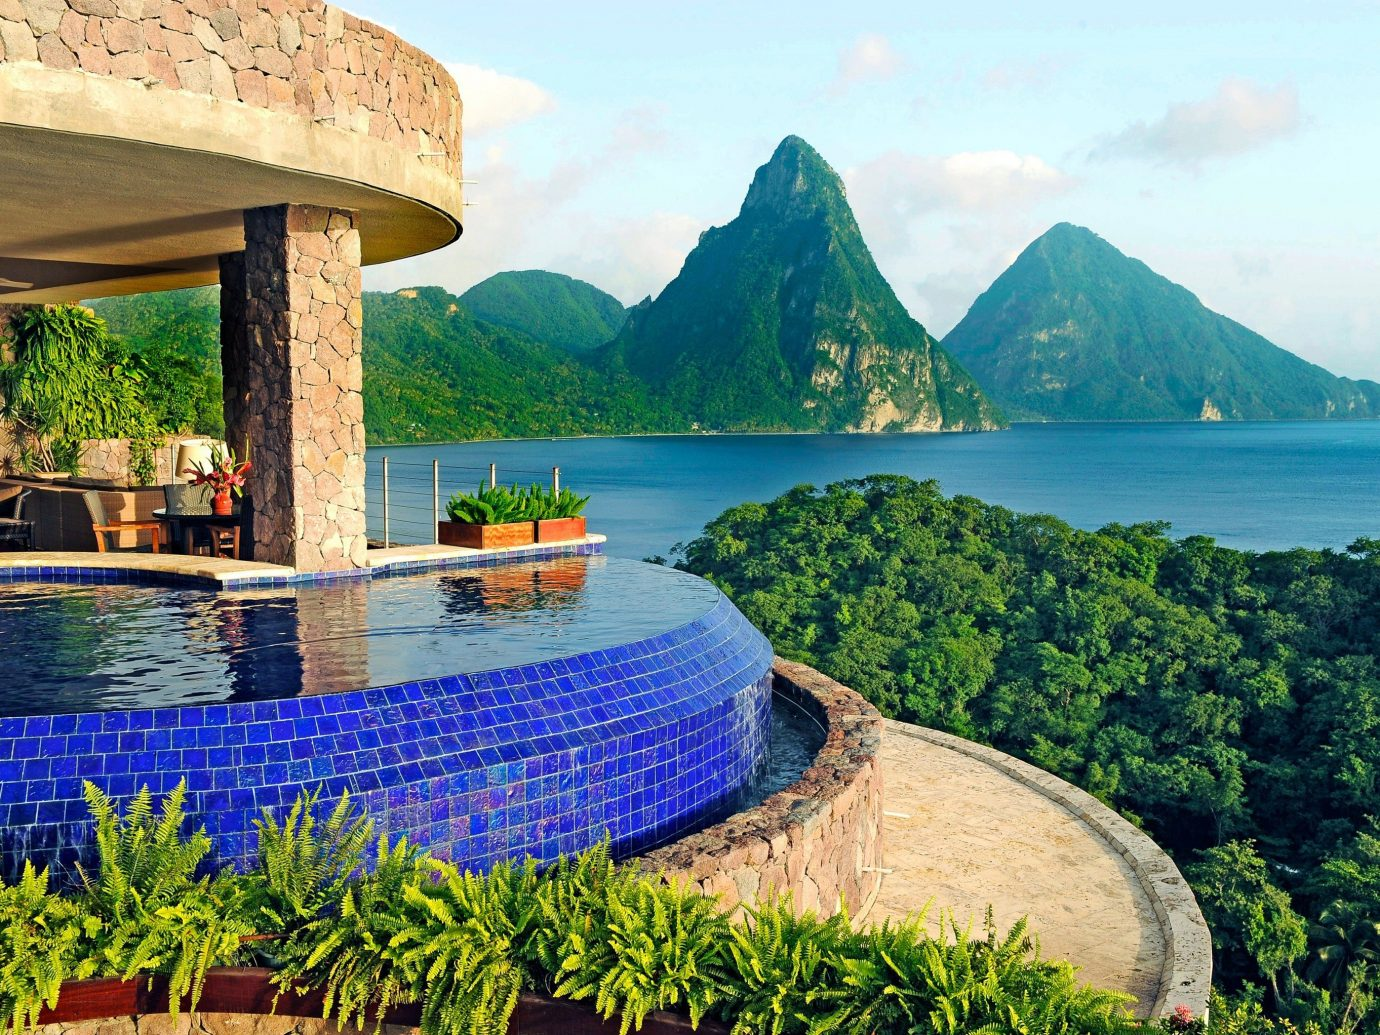 Hotels Offbeat mountain water sky outdoor Lake Boat River vacation tourism Sea Coast estate bay Nature Resort landscape background flower overlooking surrounded